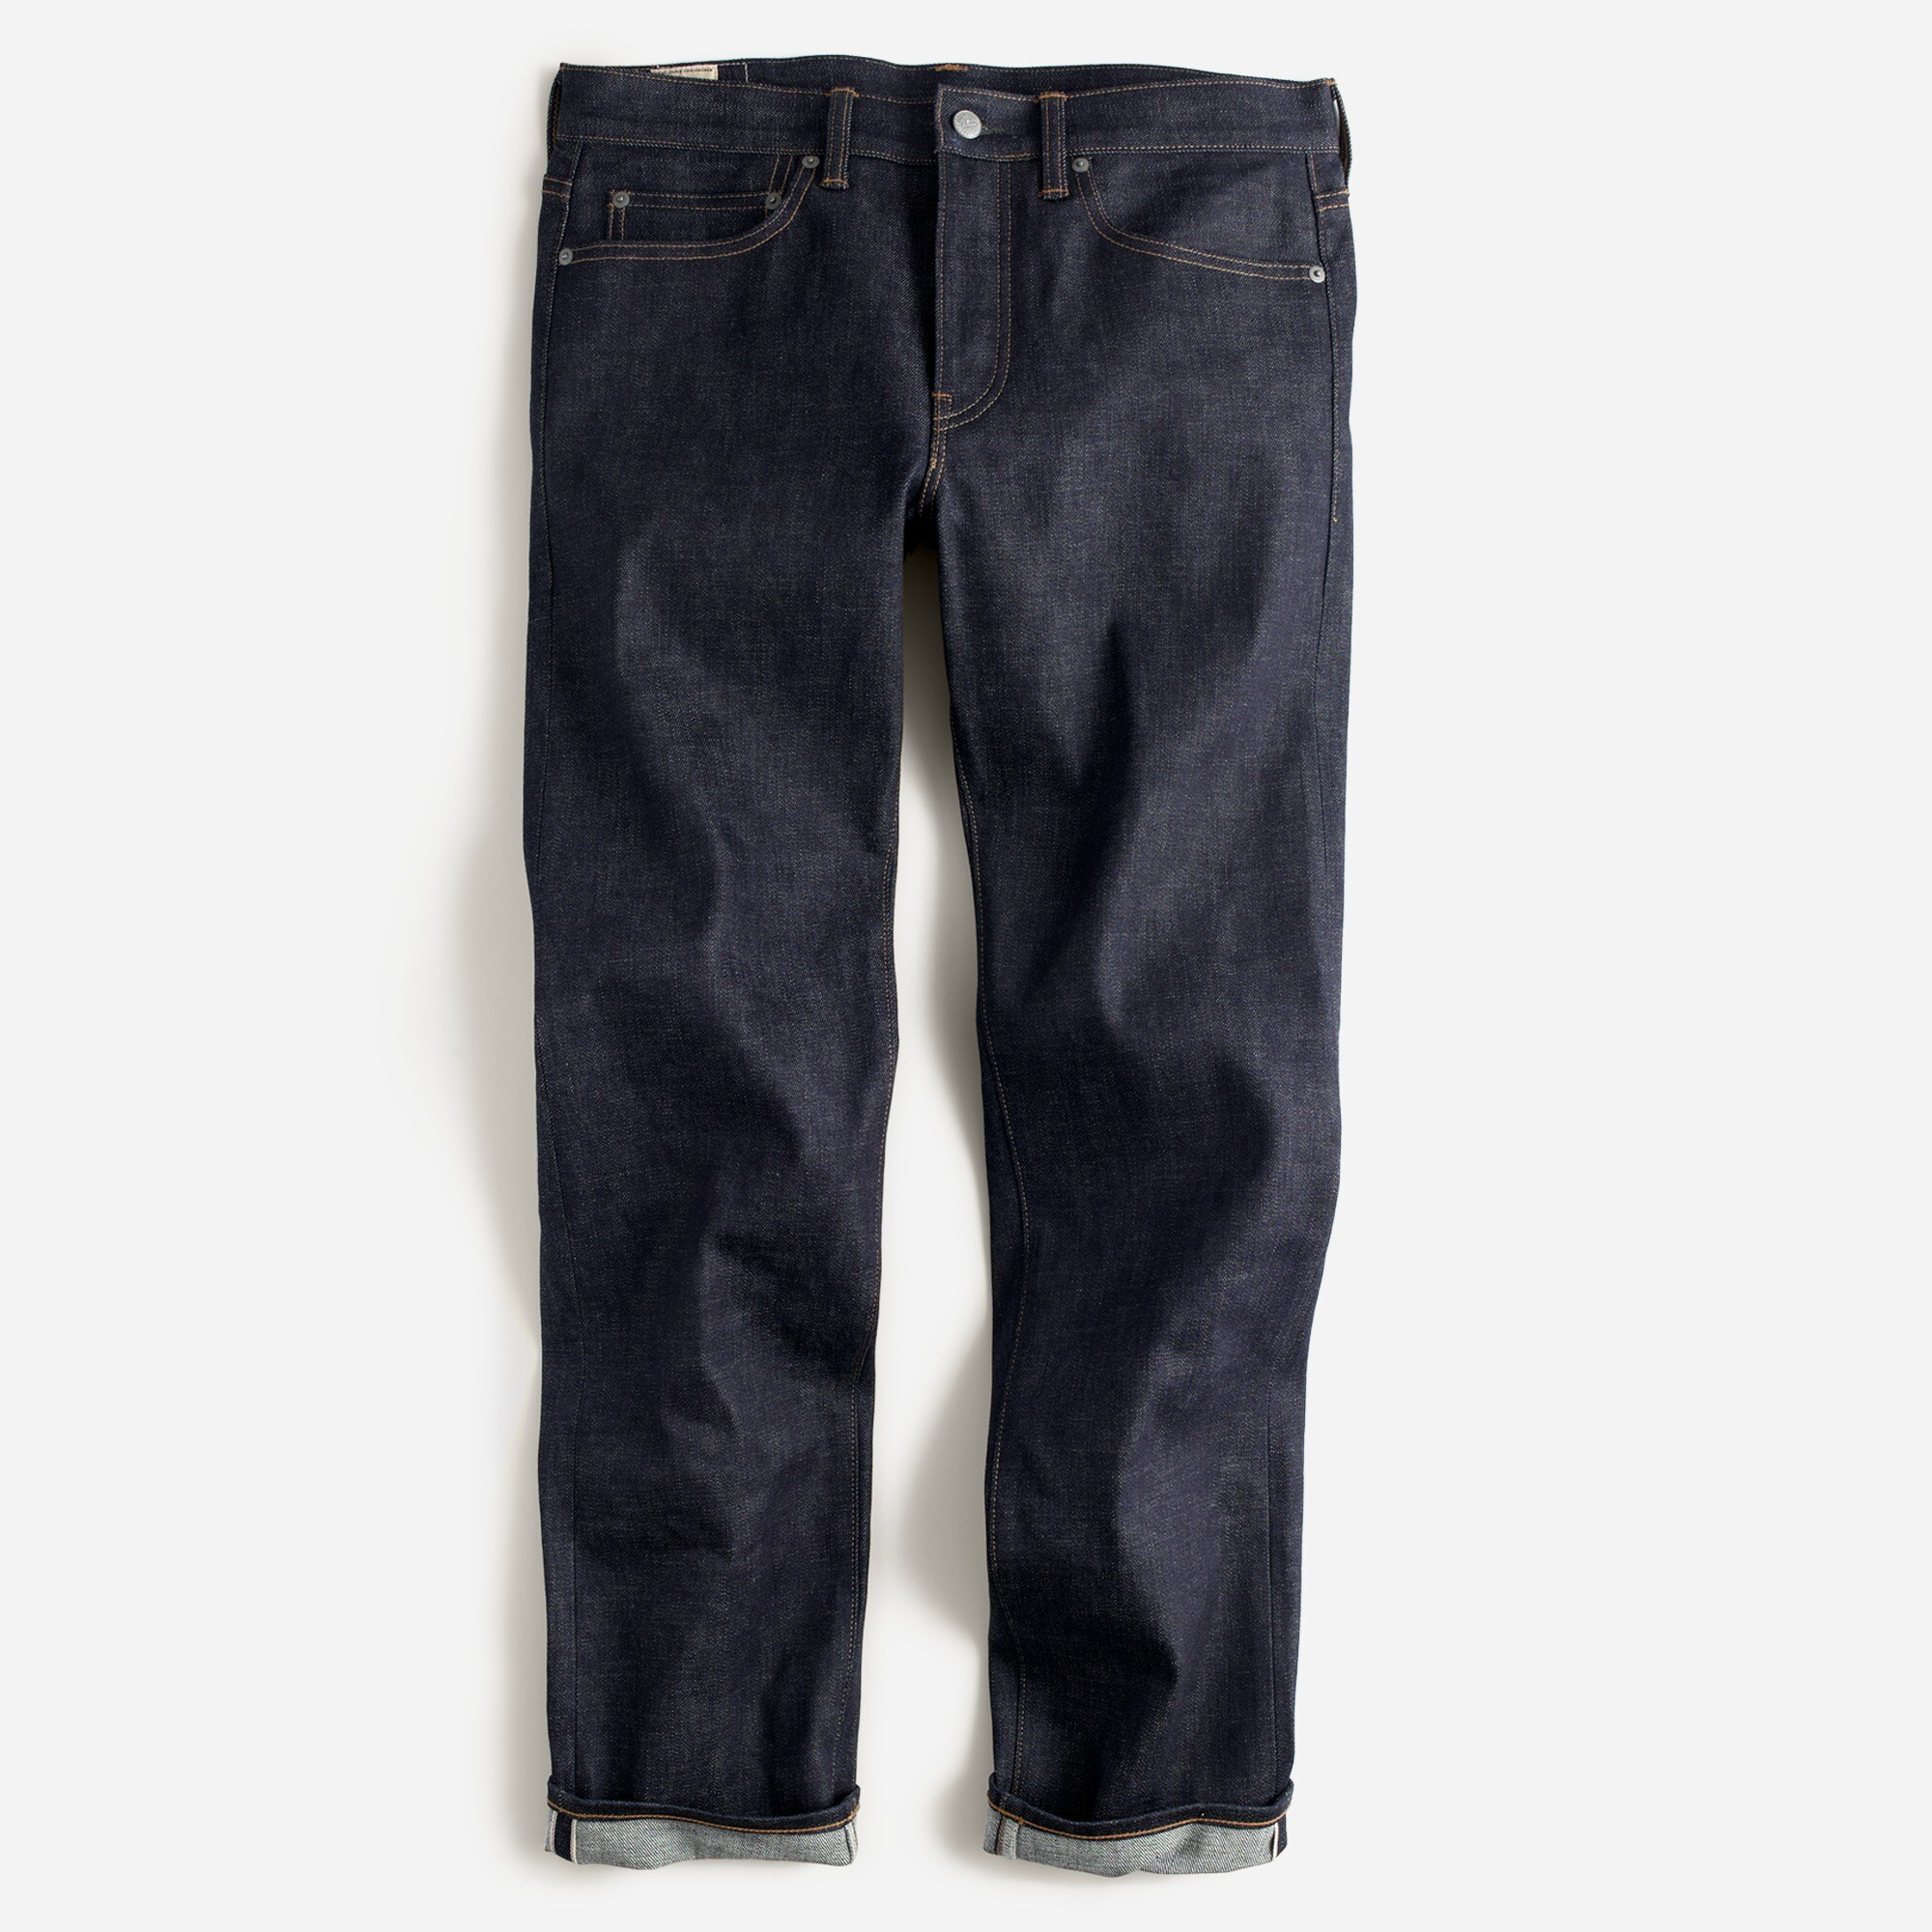 Image 5 for 770 Straight-fit stretch jean in indigo raw selvedge